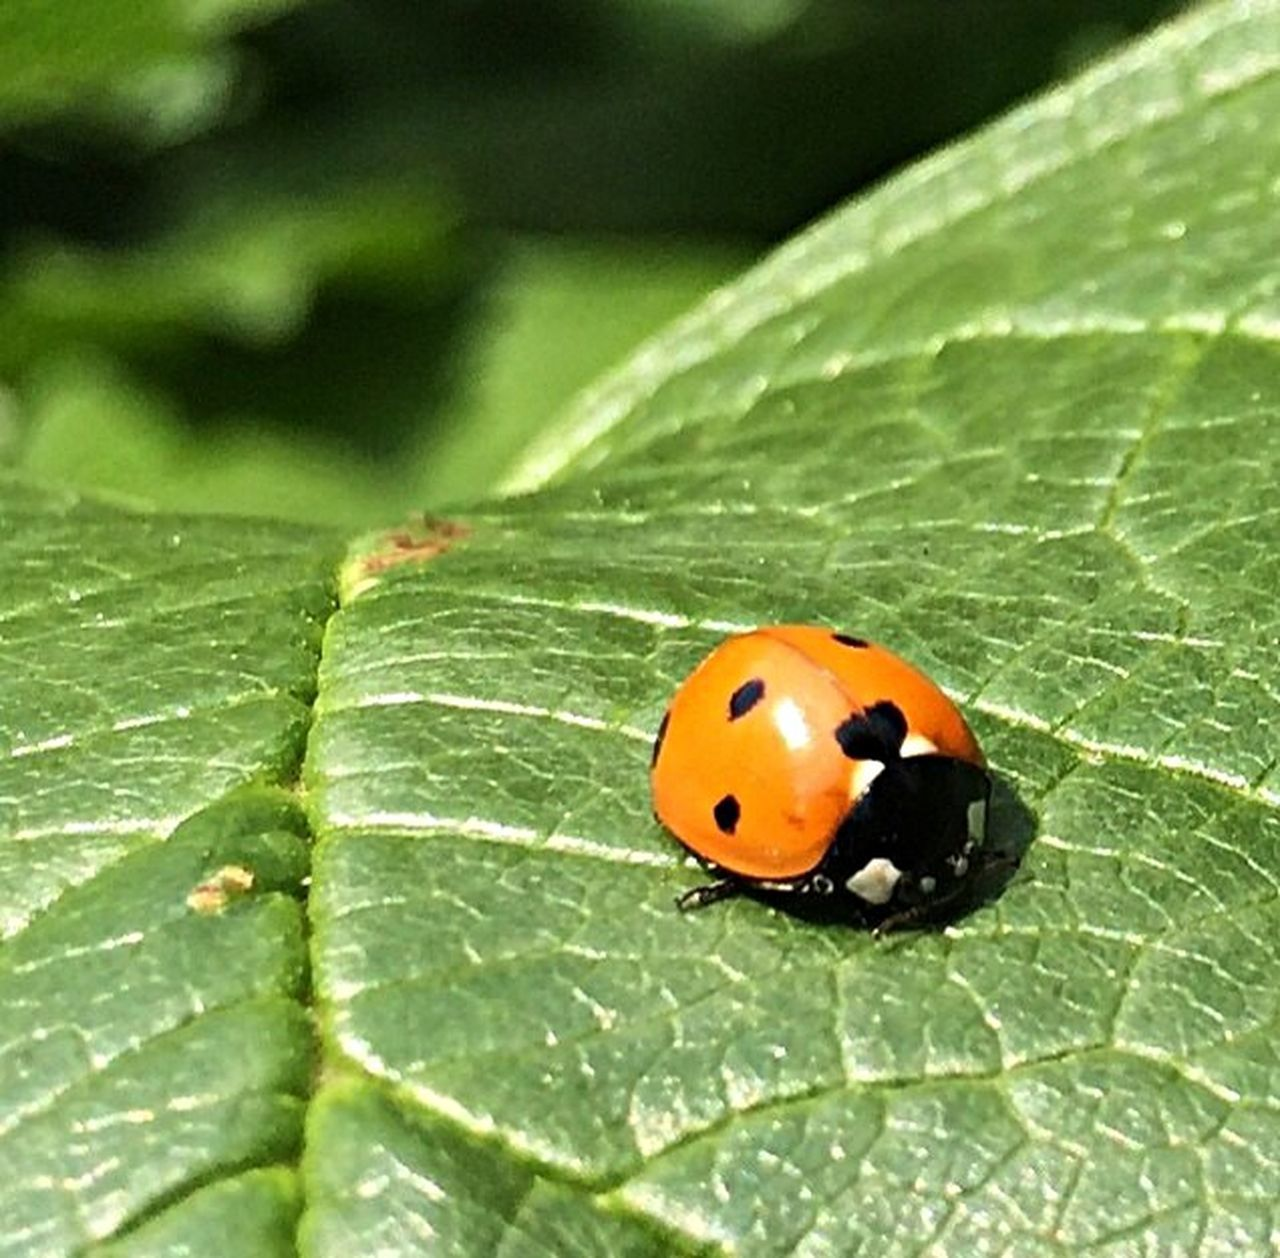 leaf, one animal, insect, animal themes, animals in the wild, green color, close-up, no people, day, nature, outdoors, beauty in nature, ladybug, fragility